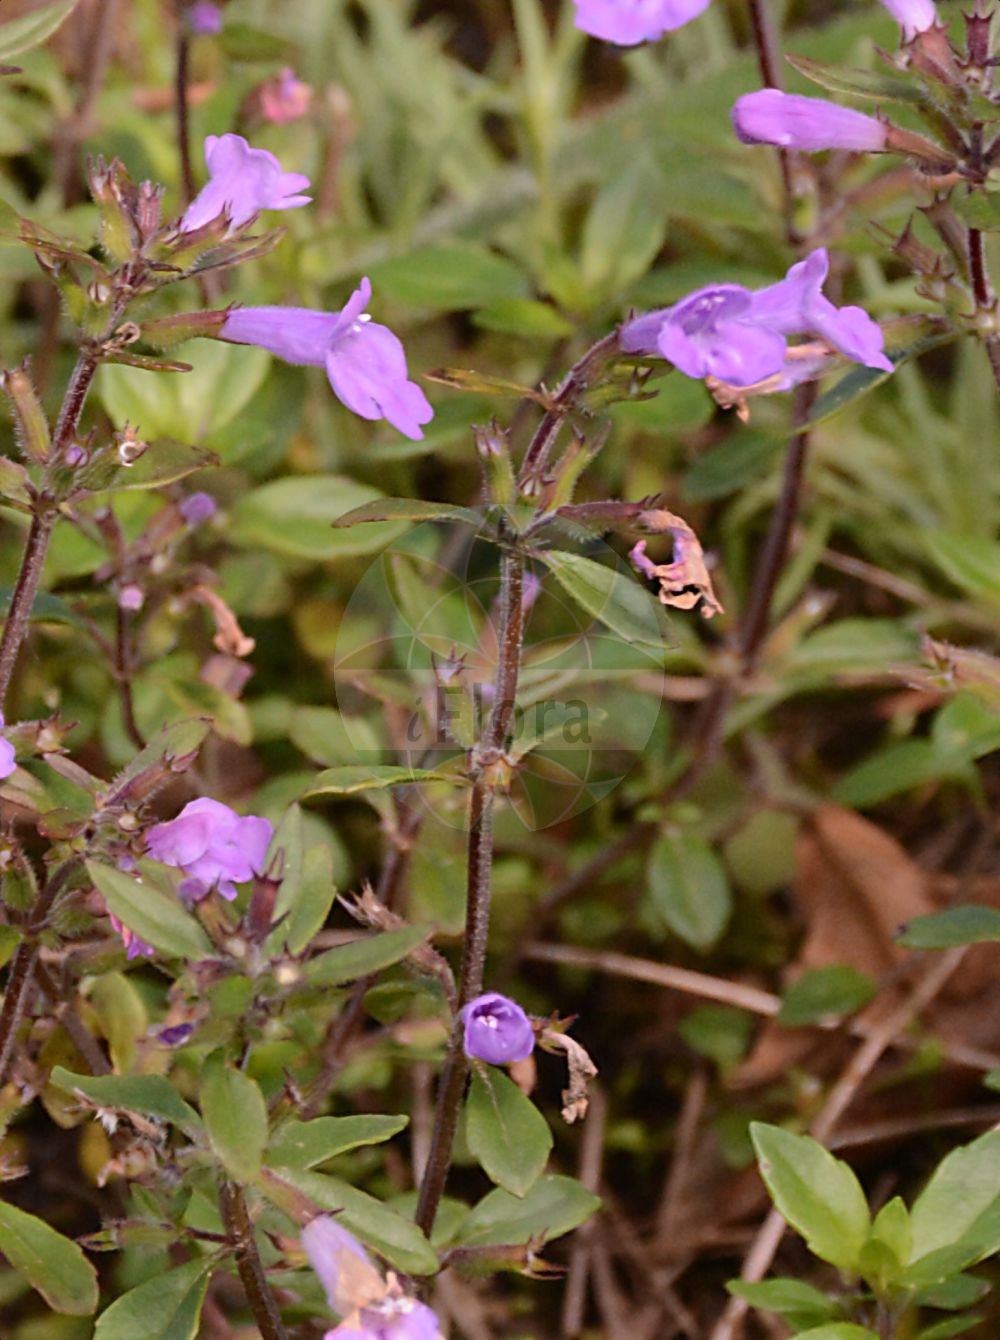 Foto von Clinopodium alpinum (Alpen-Steinquendel - Alpine Calamint). Das Foto wurde in Linz, Oberoesterreich, Österreich aufgenommen. ---- Photo of Clinopodium alpinum (Alpen-Steinquendel - Alpine Calamint).The picture was taken in Linz, Upper Austria, Austria.(Clinopodium alpinum,Alpen-Steinquendel,Alpine Calamint,Faucibarba alpina,Melissa alpina,Satureja alpina,Thymus alpinus,Alpenquendel,Rock Thyme,Clinopodium,Wirbeldost,Calamint,Lamiaceae,Lippenbluetengewaechse;Lippenbluetler,Nettle family)